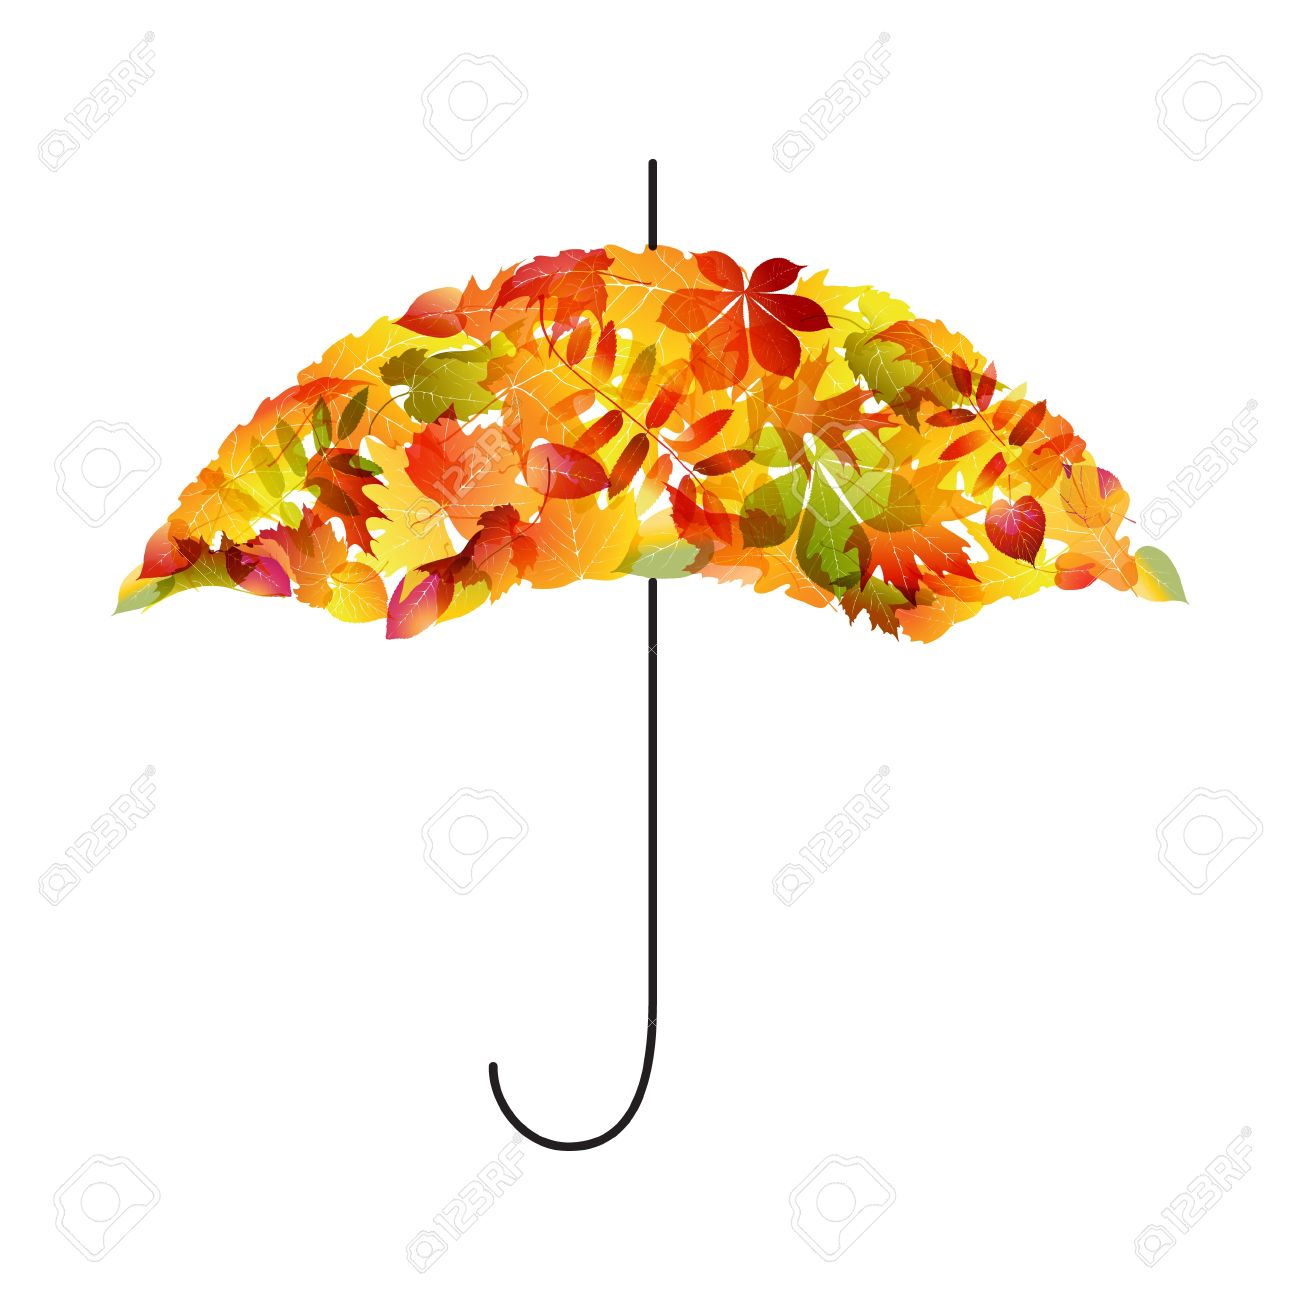 autumn background umbrella of leaves royalty free cliparts